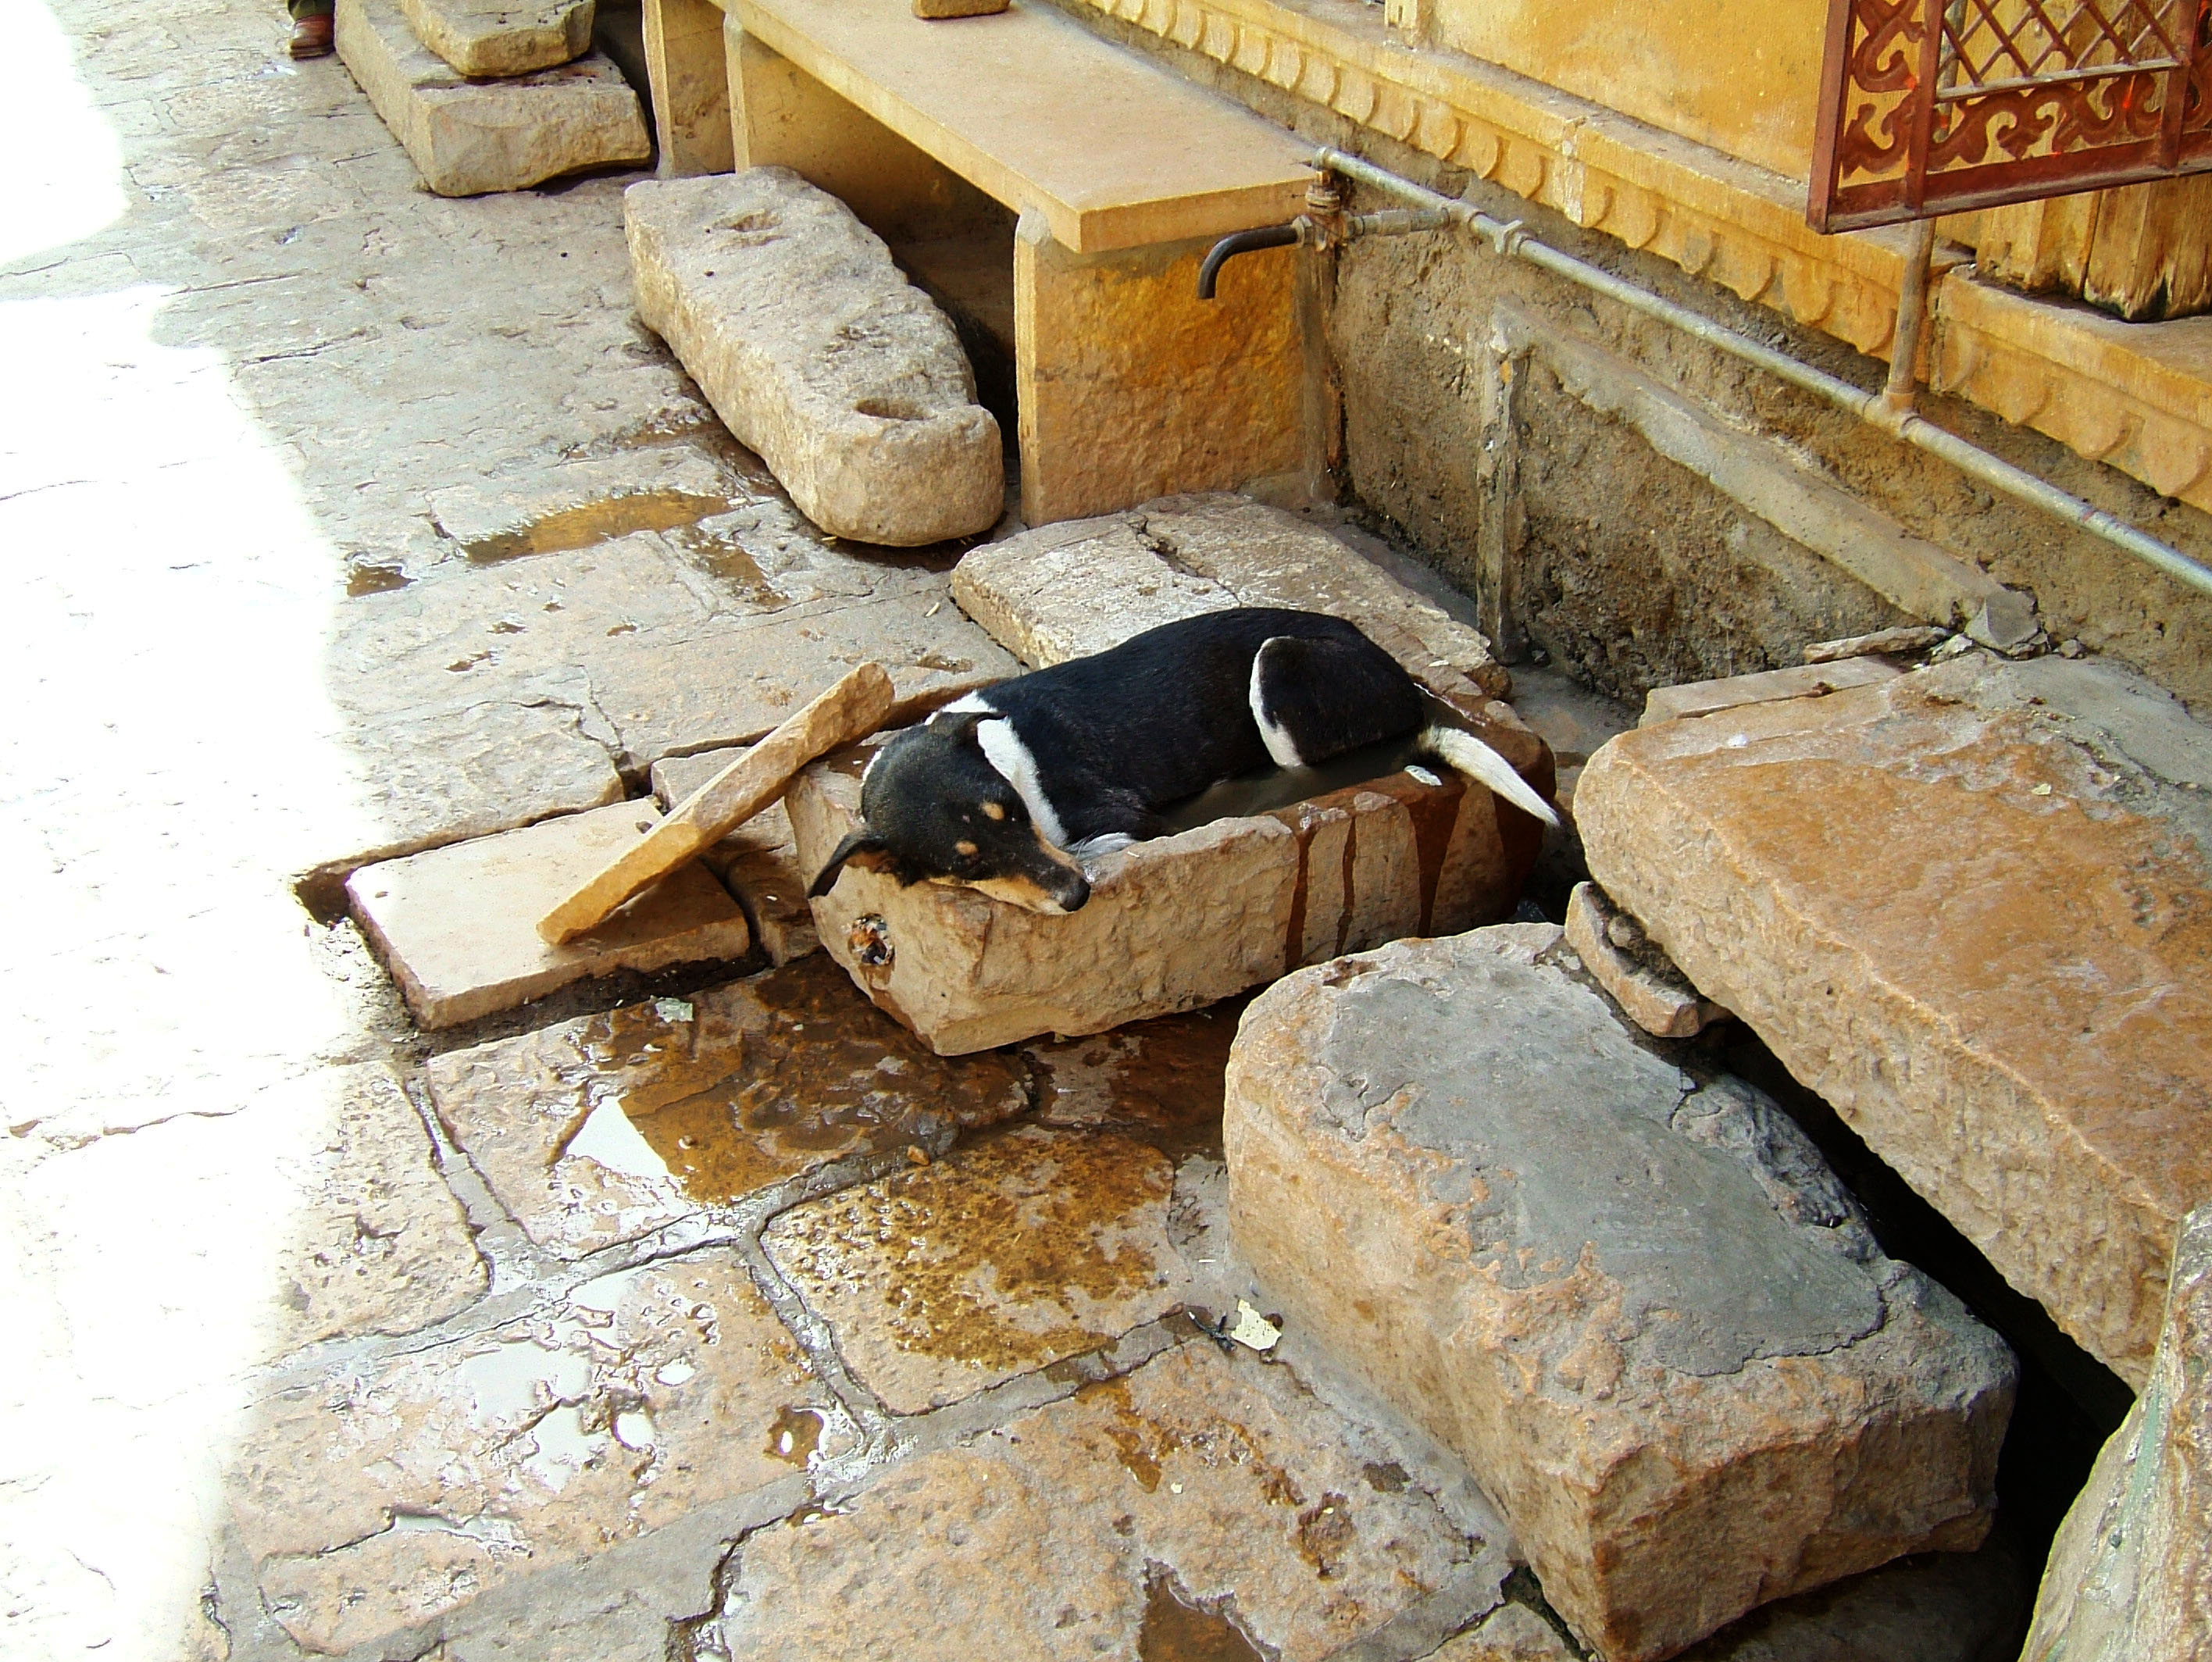 Dog cooling off India Rajasthan Jaisalmer Fort 01